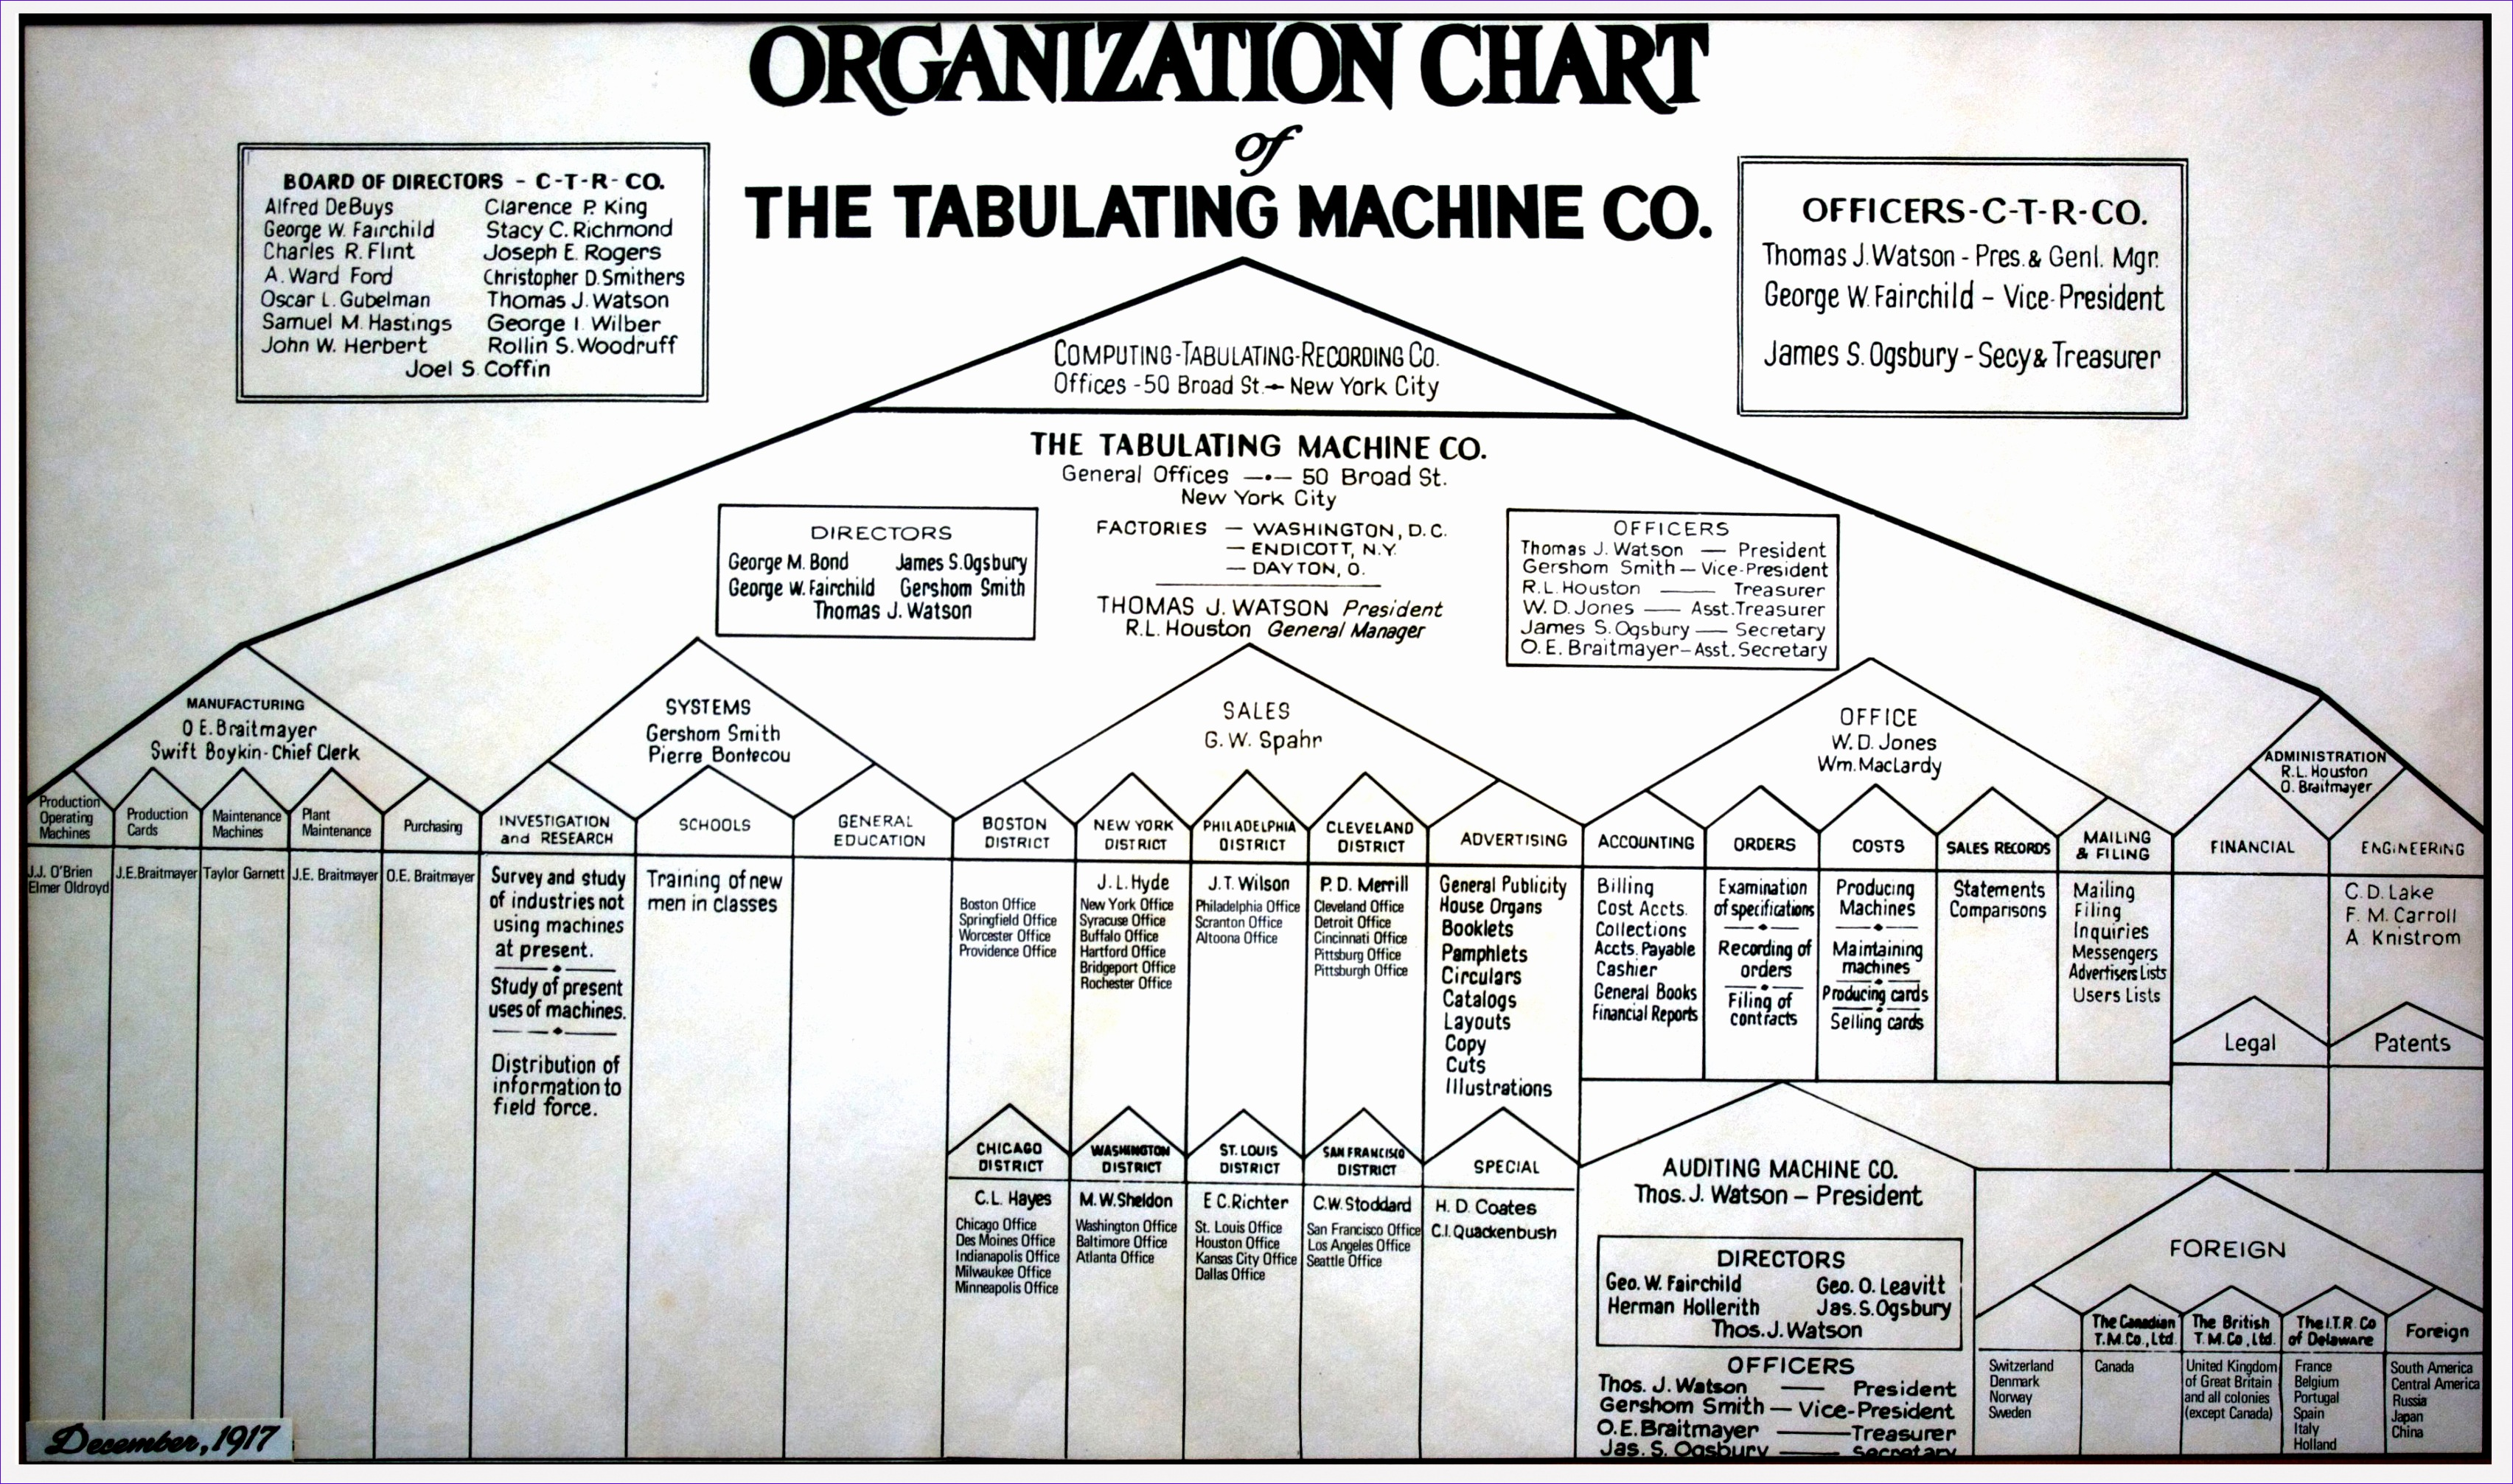 Tabulating Machine Co Organization Chart